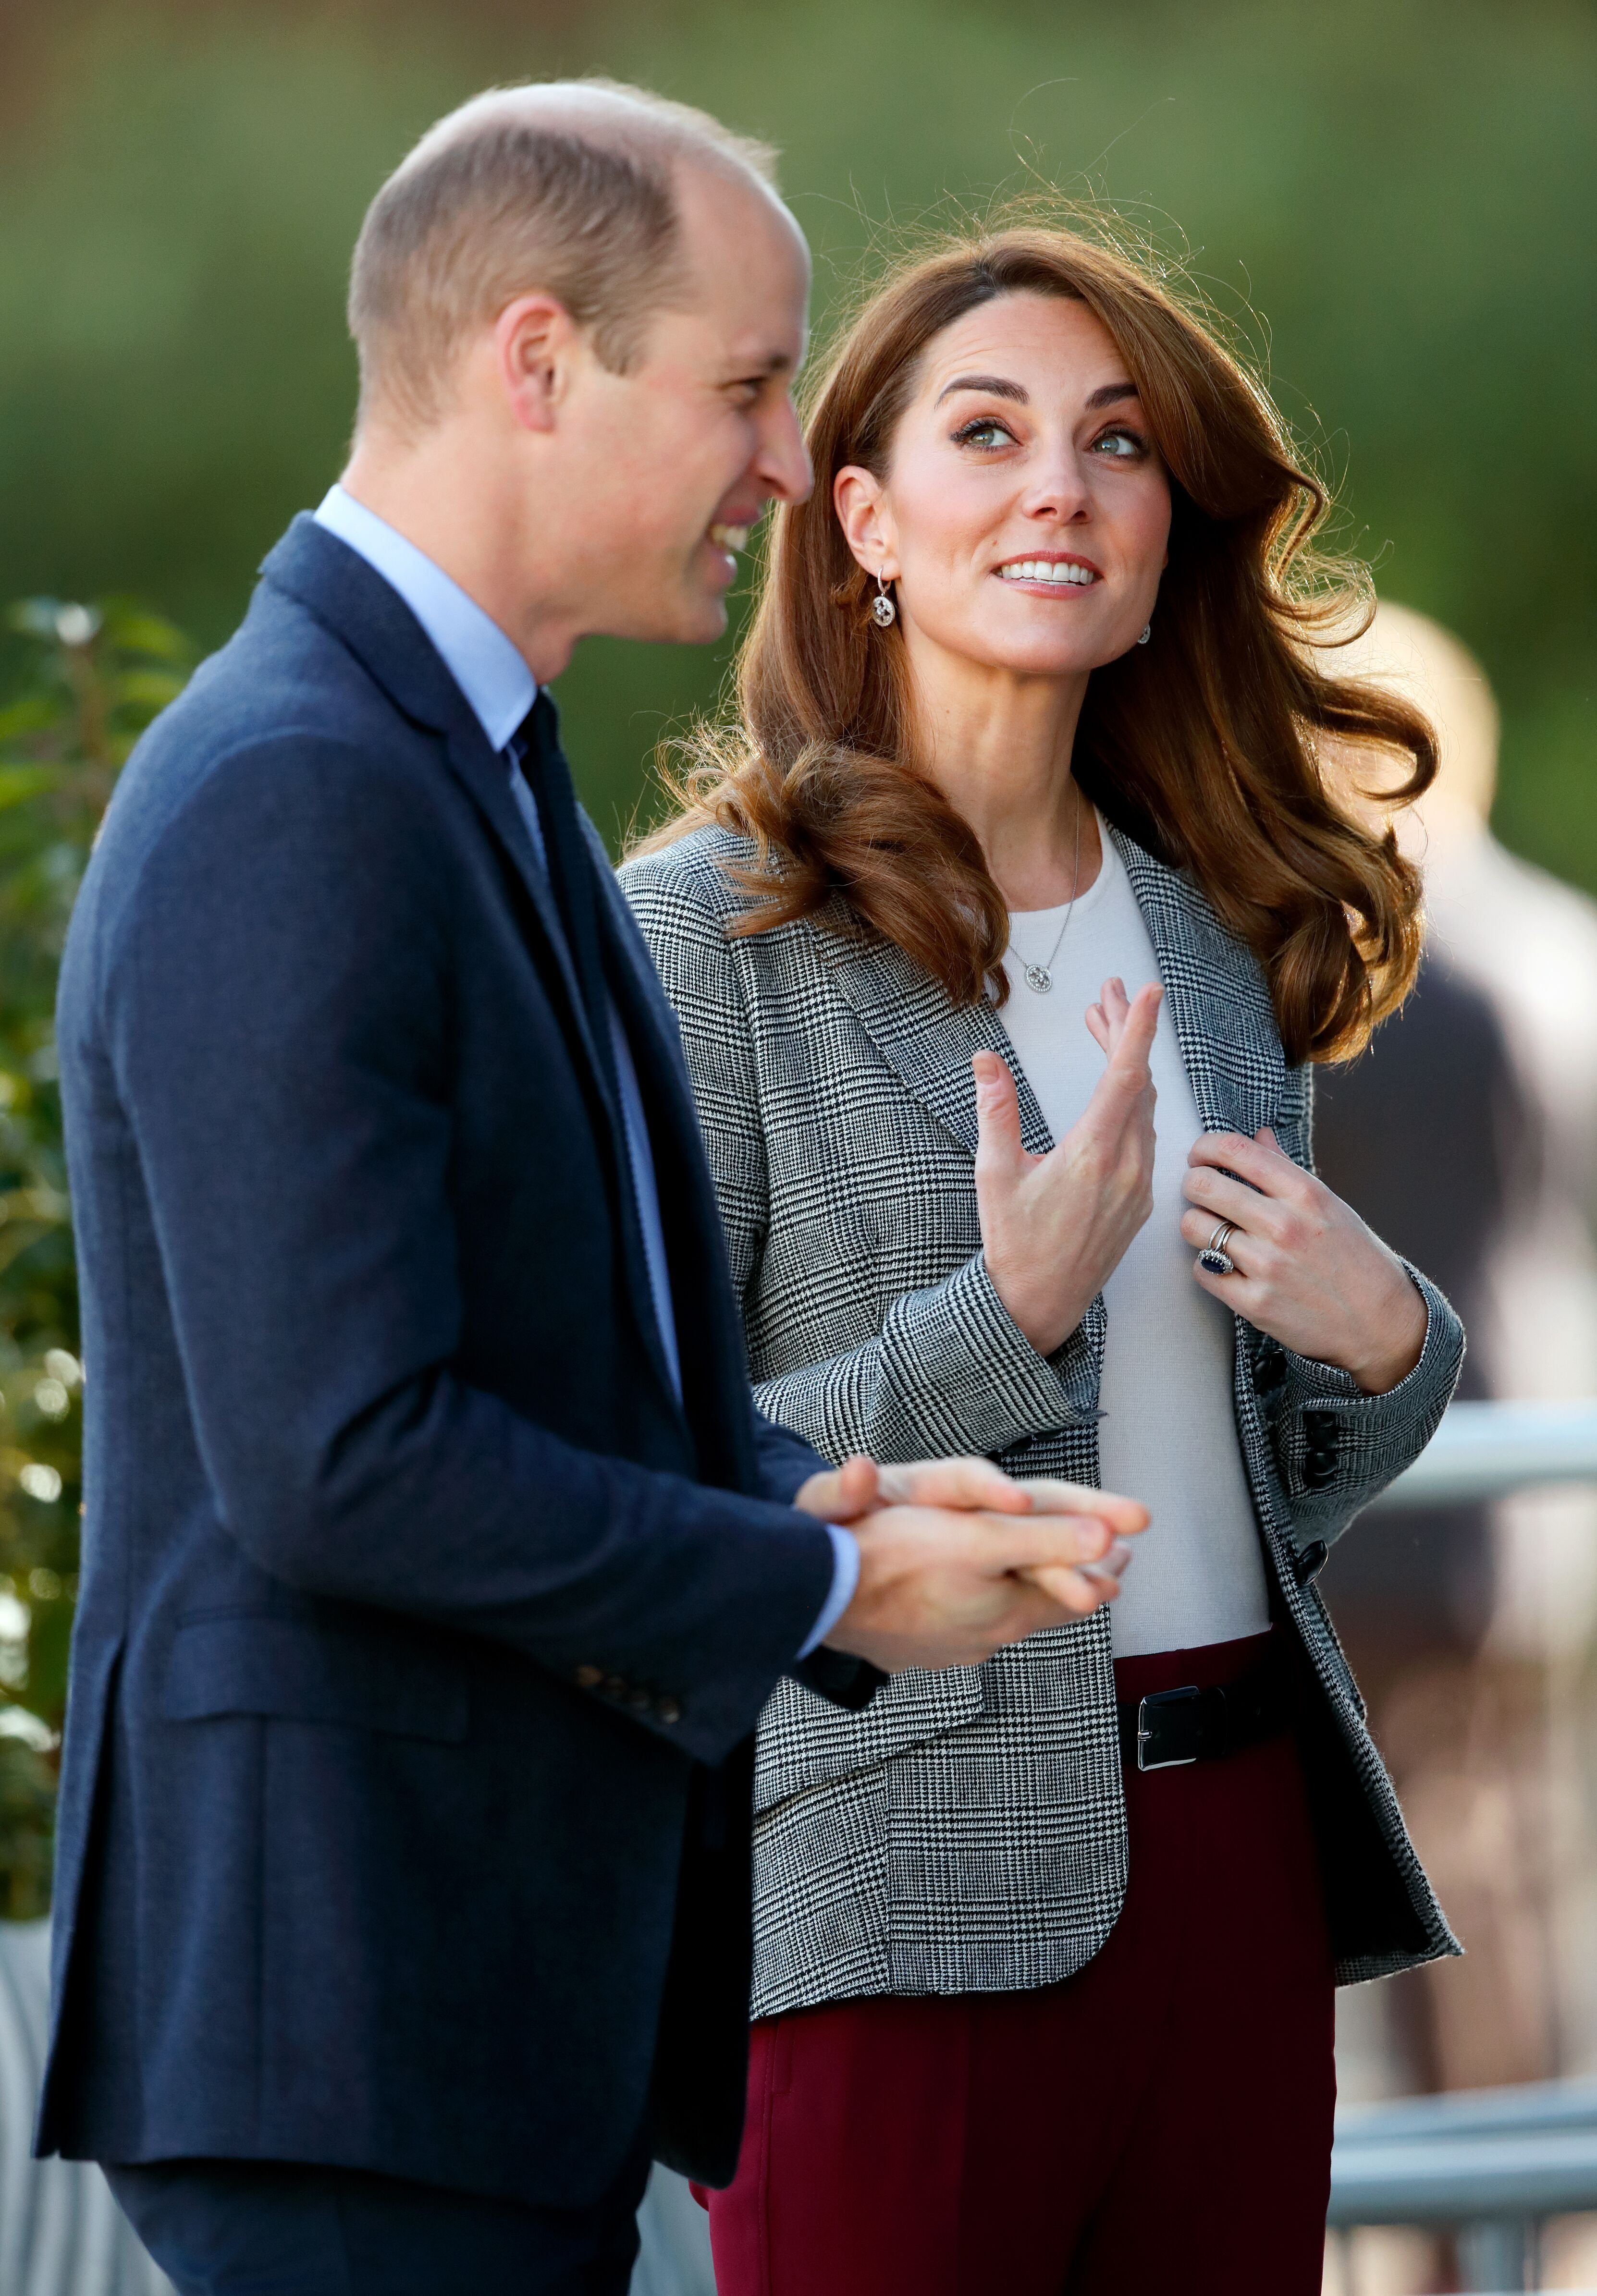 Prince William, Duke of Cambridge and Catherine, Duchess of Cambridge attend Shout's Crisis Volunteer celebration. | Source: Getty Images